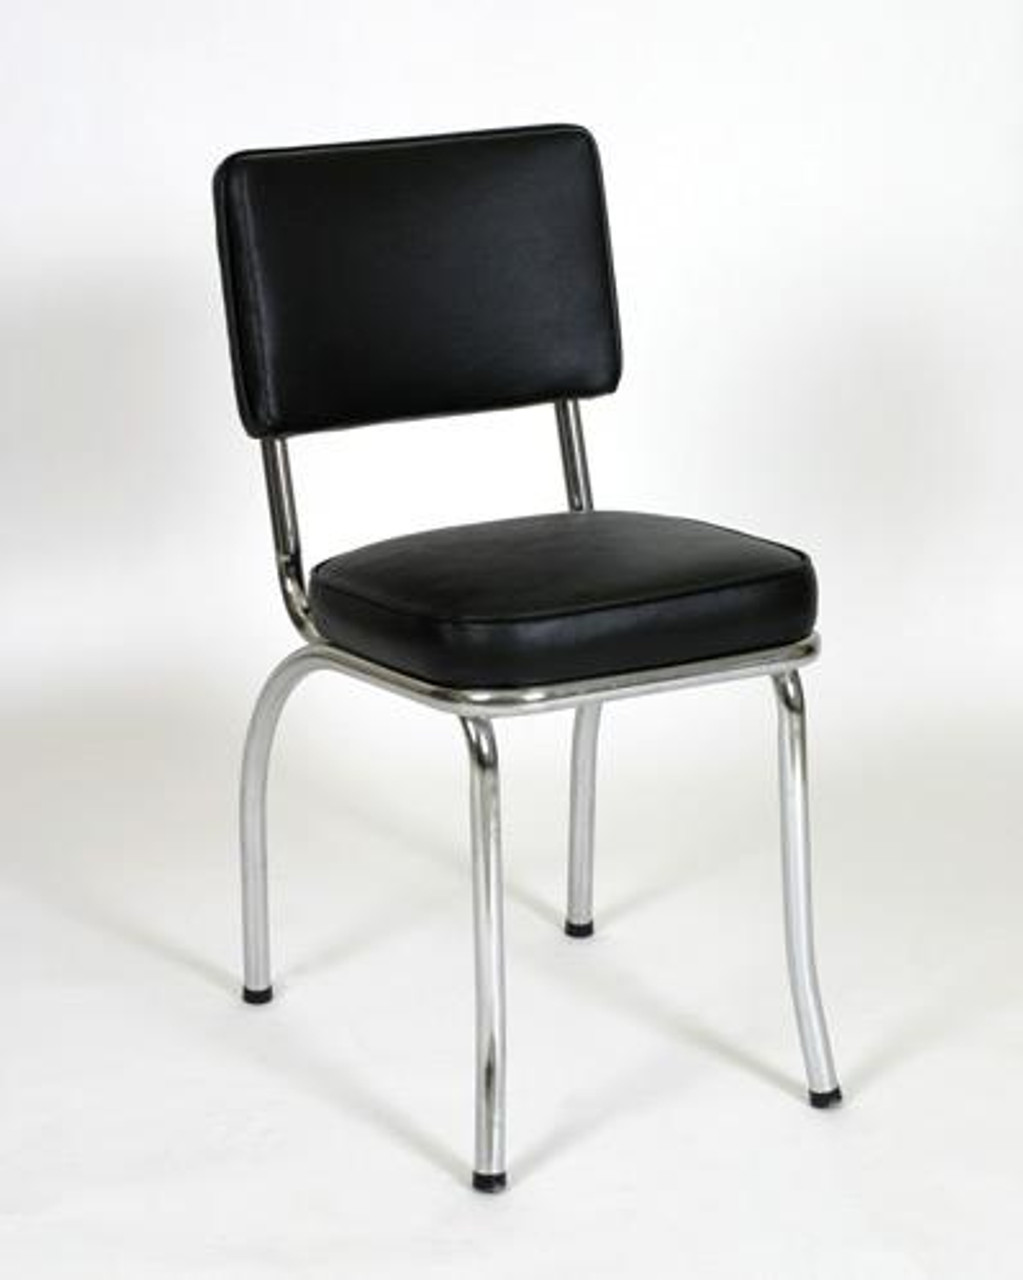 Classic Dining Chair Replacement Seats and Backs from